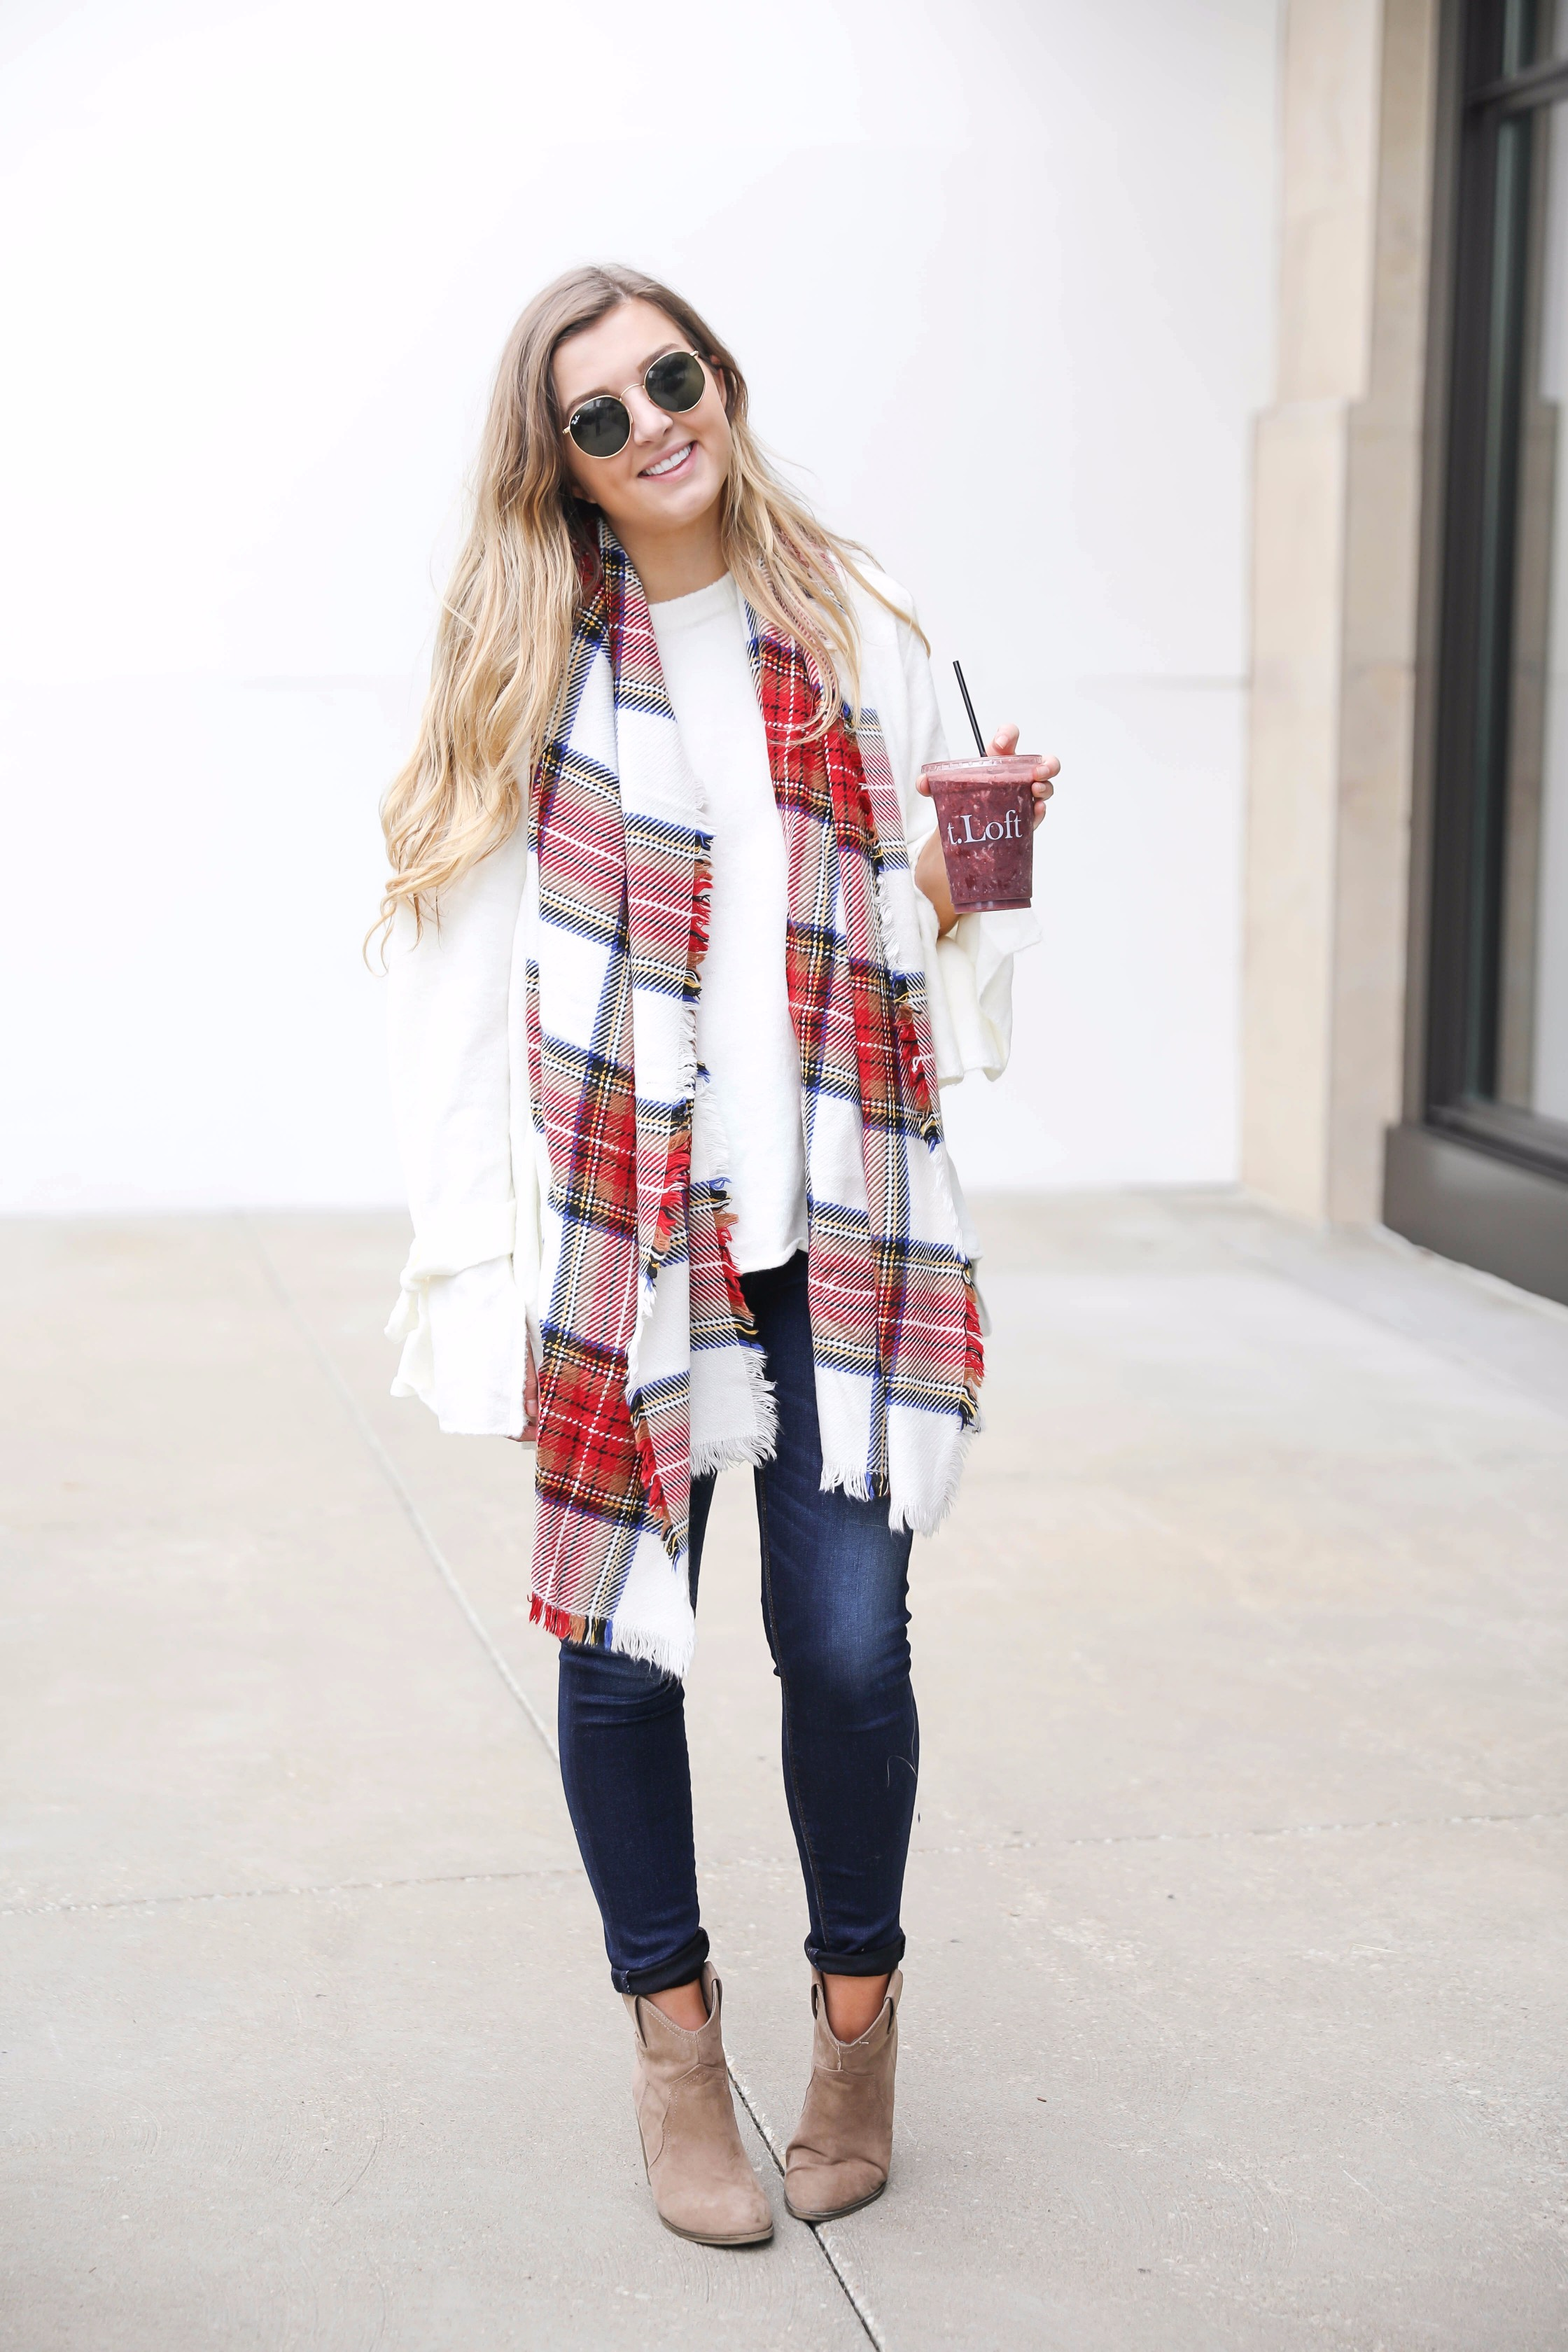 Tied bow sleeve sweater with a plaid blanket scarf! I love blanket scarves for fall. This outfit is perfect with dark jeans and booties! Details on fashion blog daily dose of charm by lauren lindmark